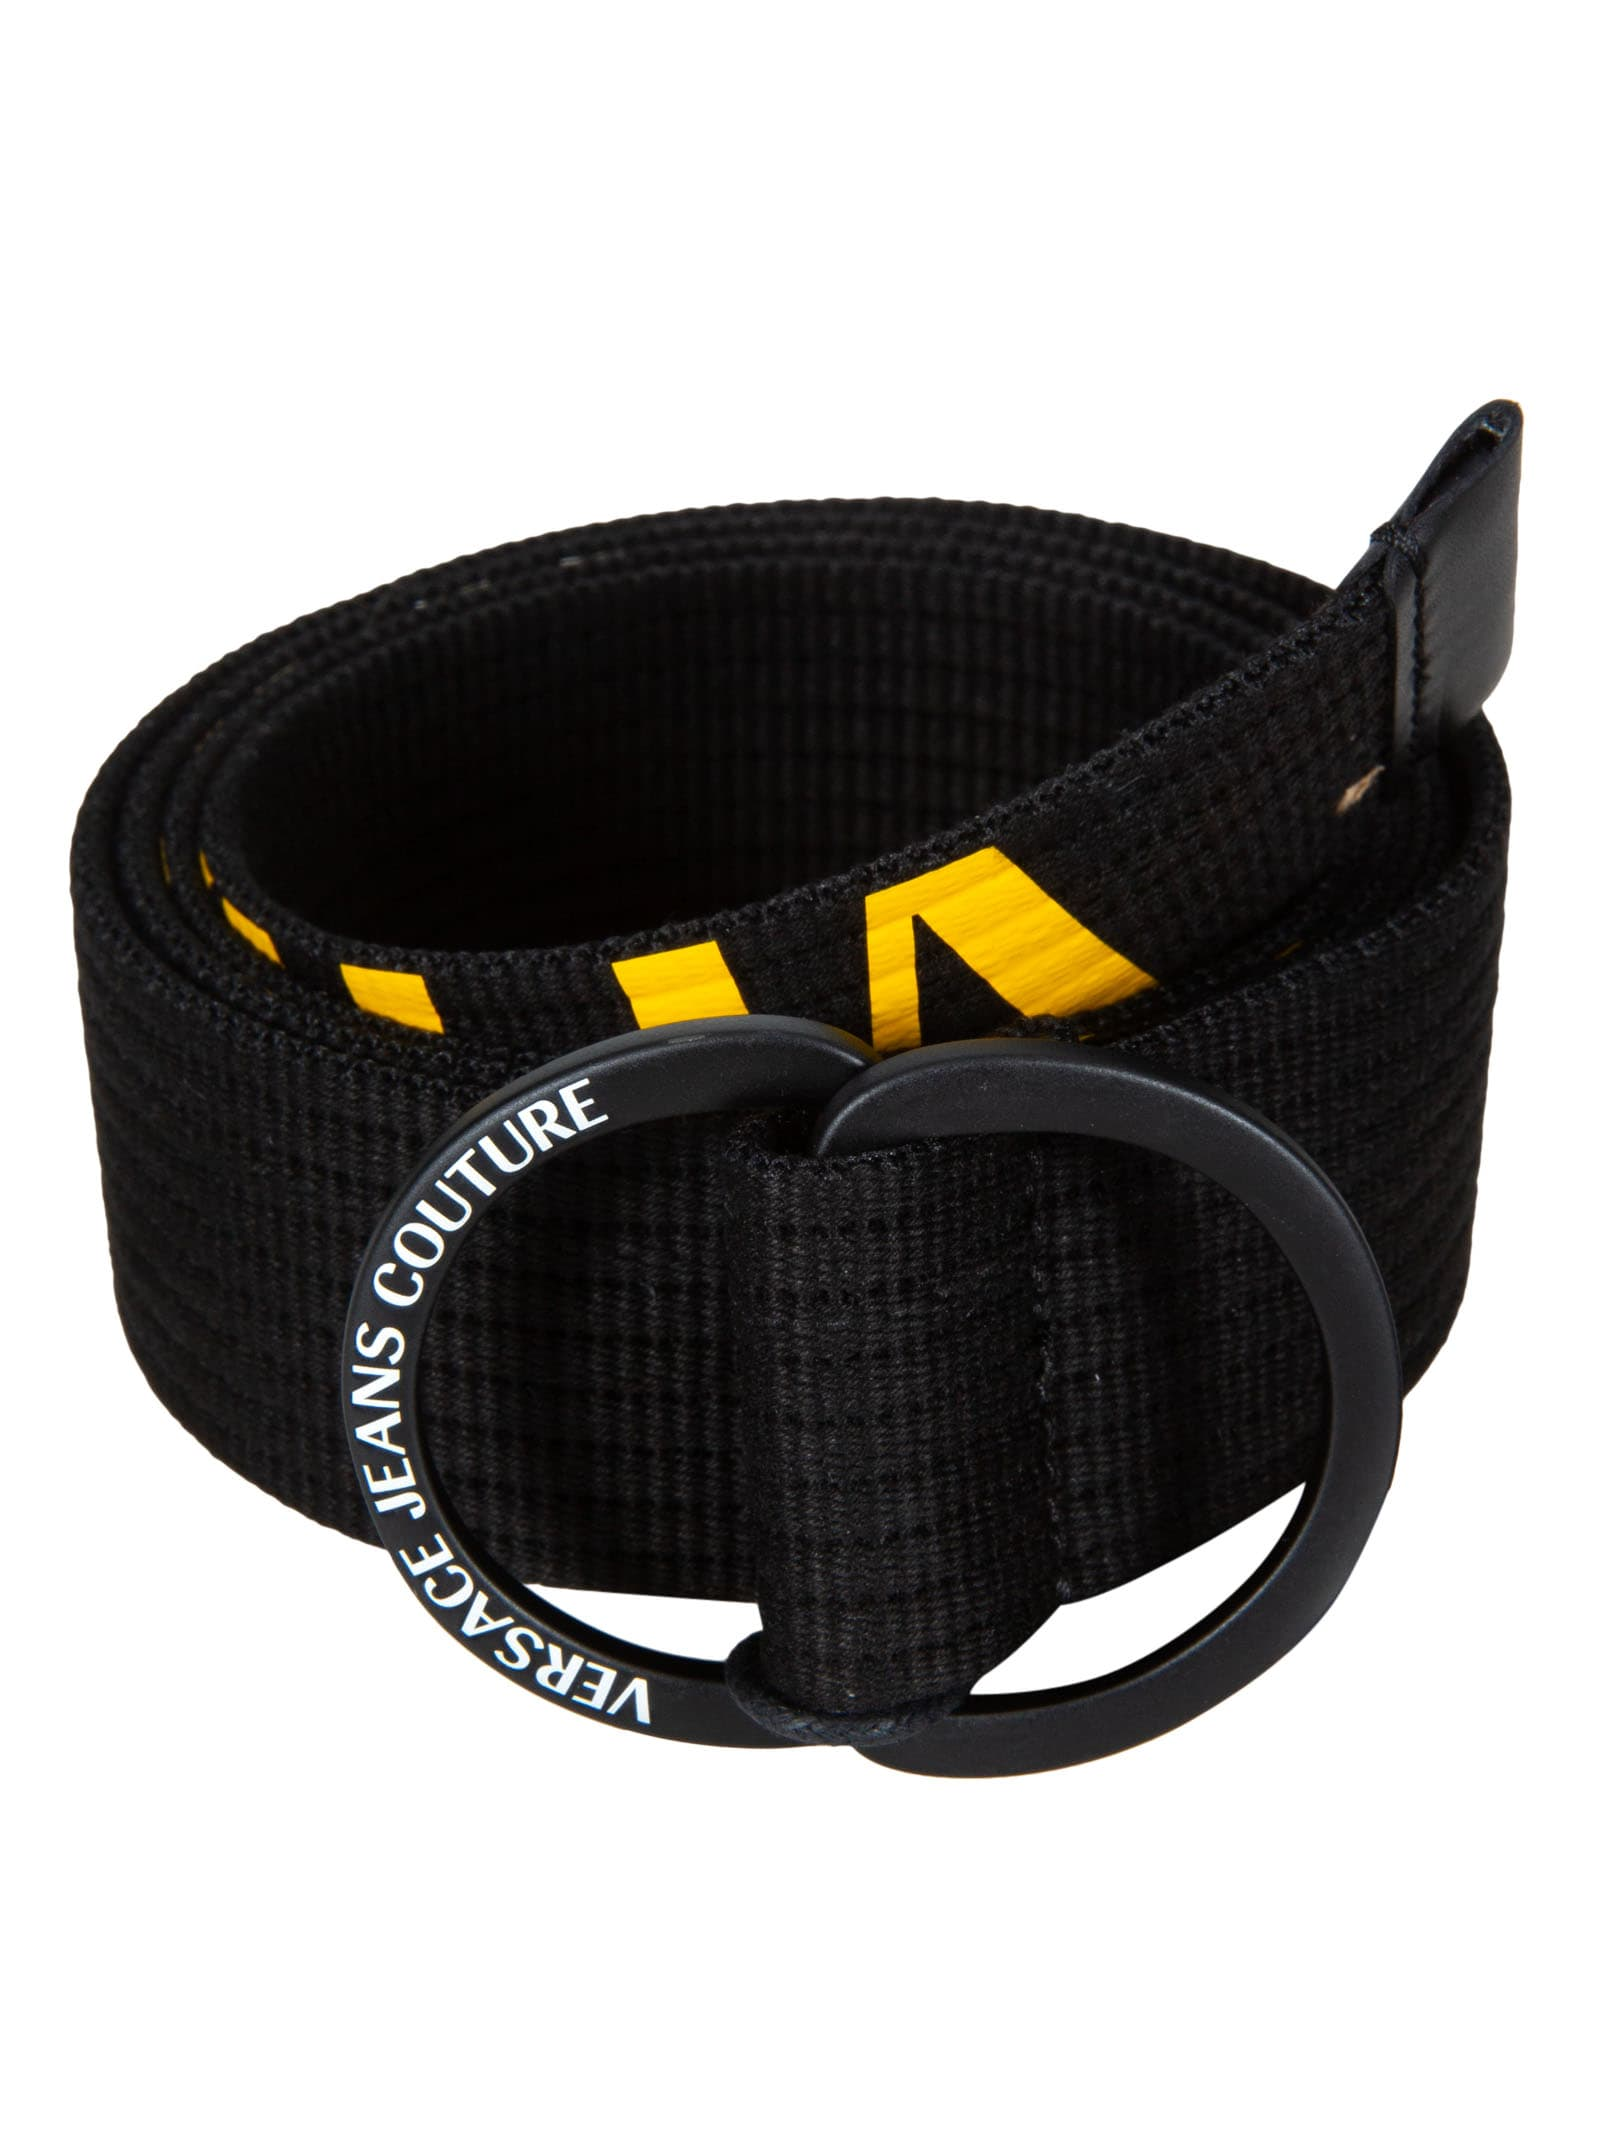 Versace Jeans Couture Knit Couture Belt